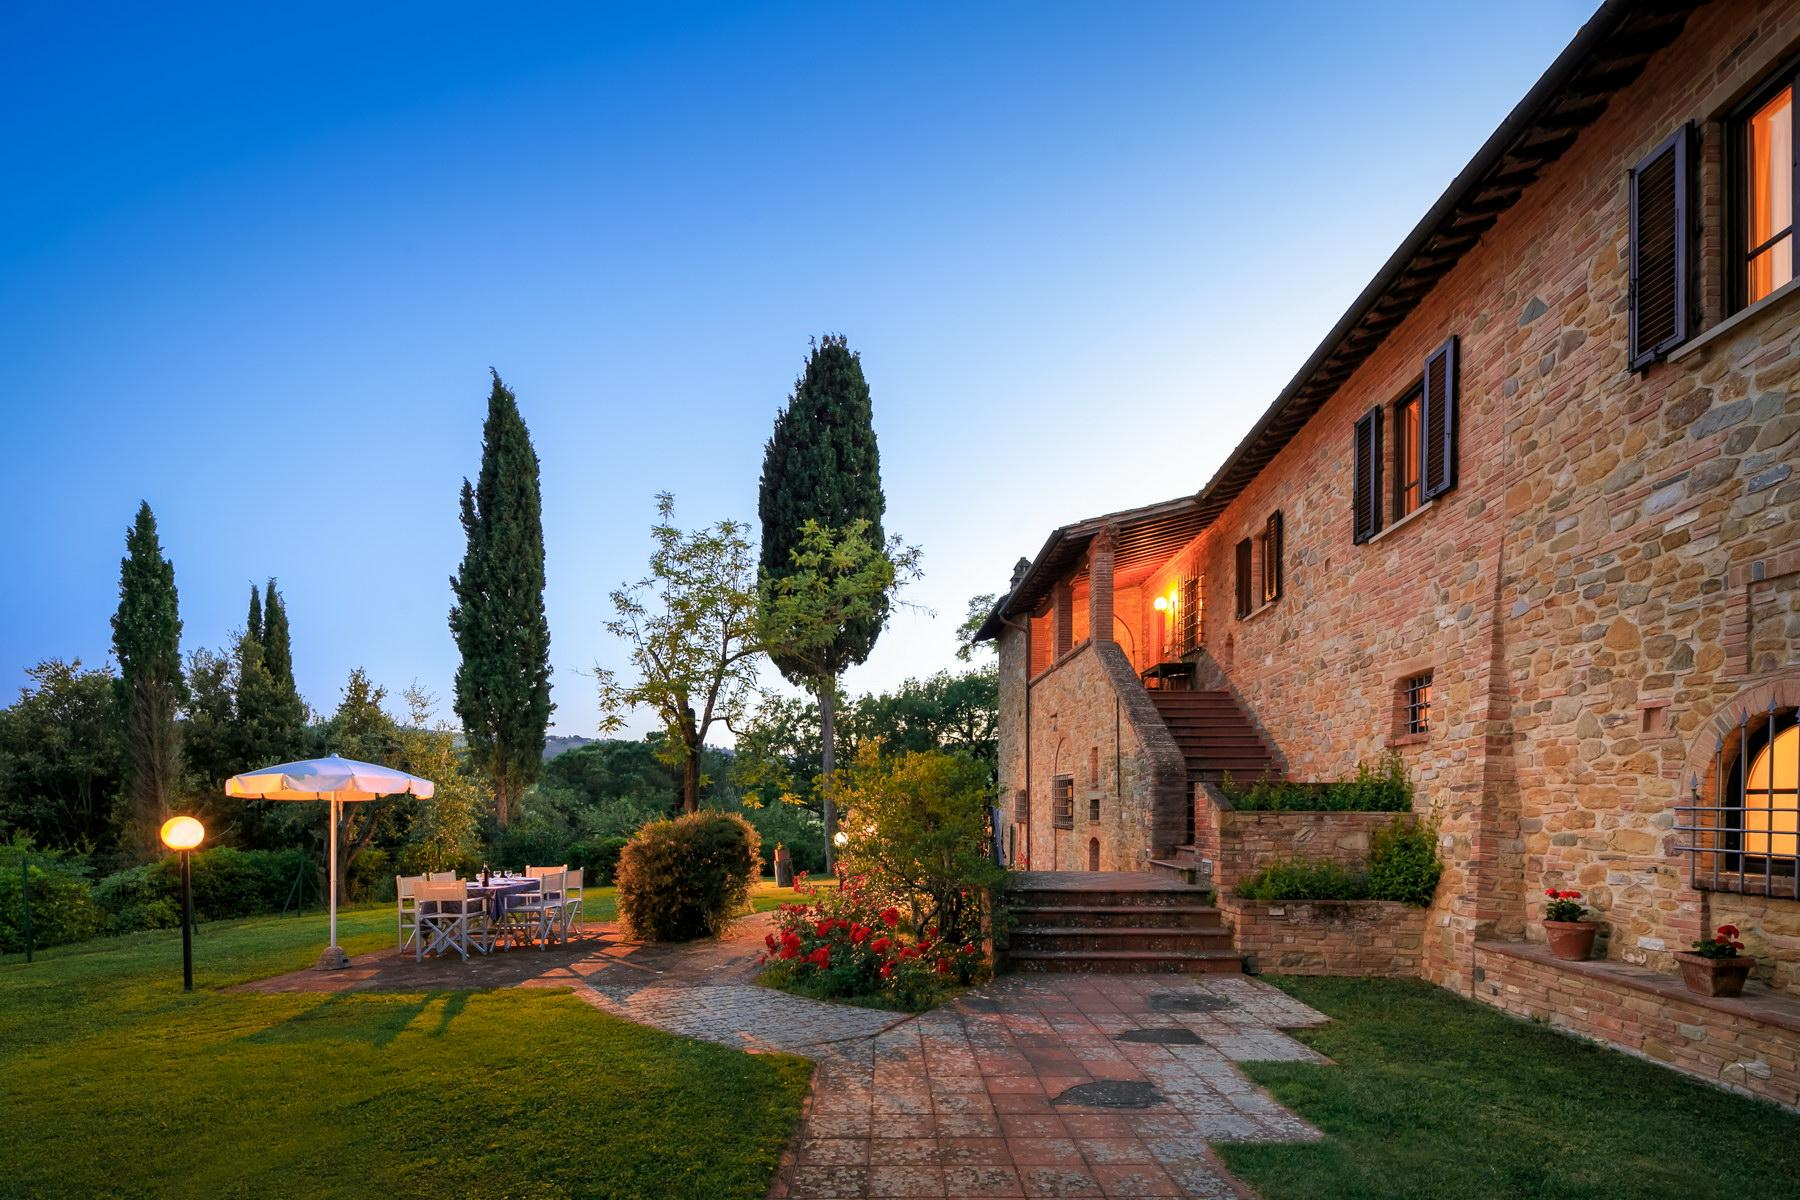 Wonderful countryhouse in the tuscan countryside - 1